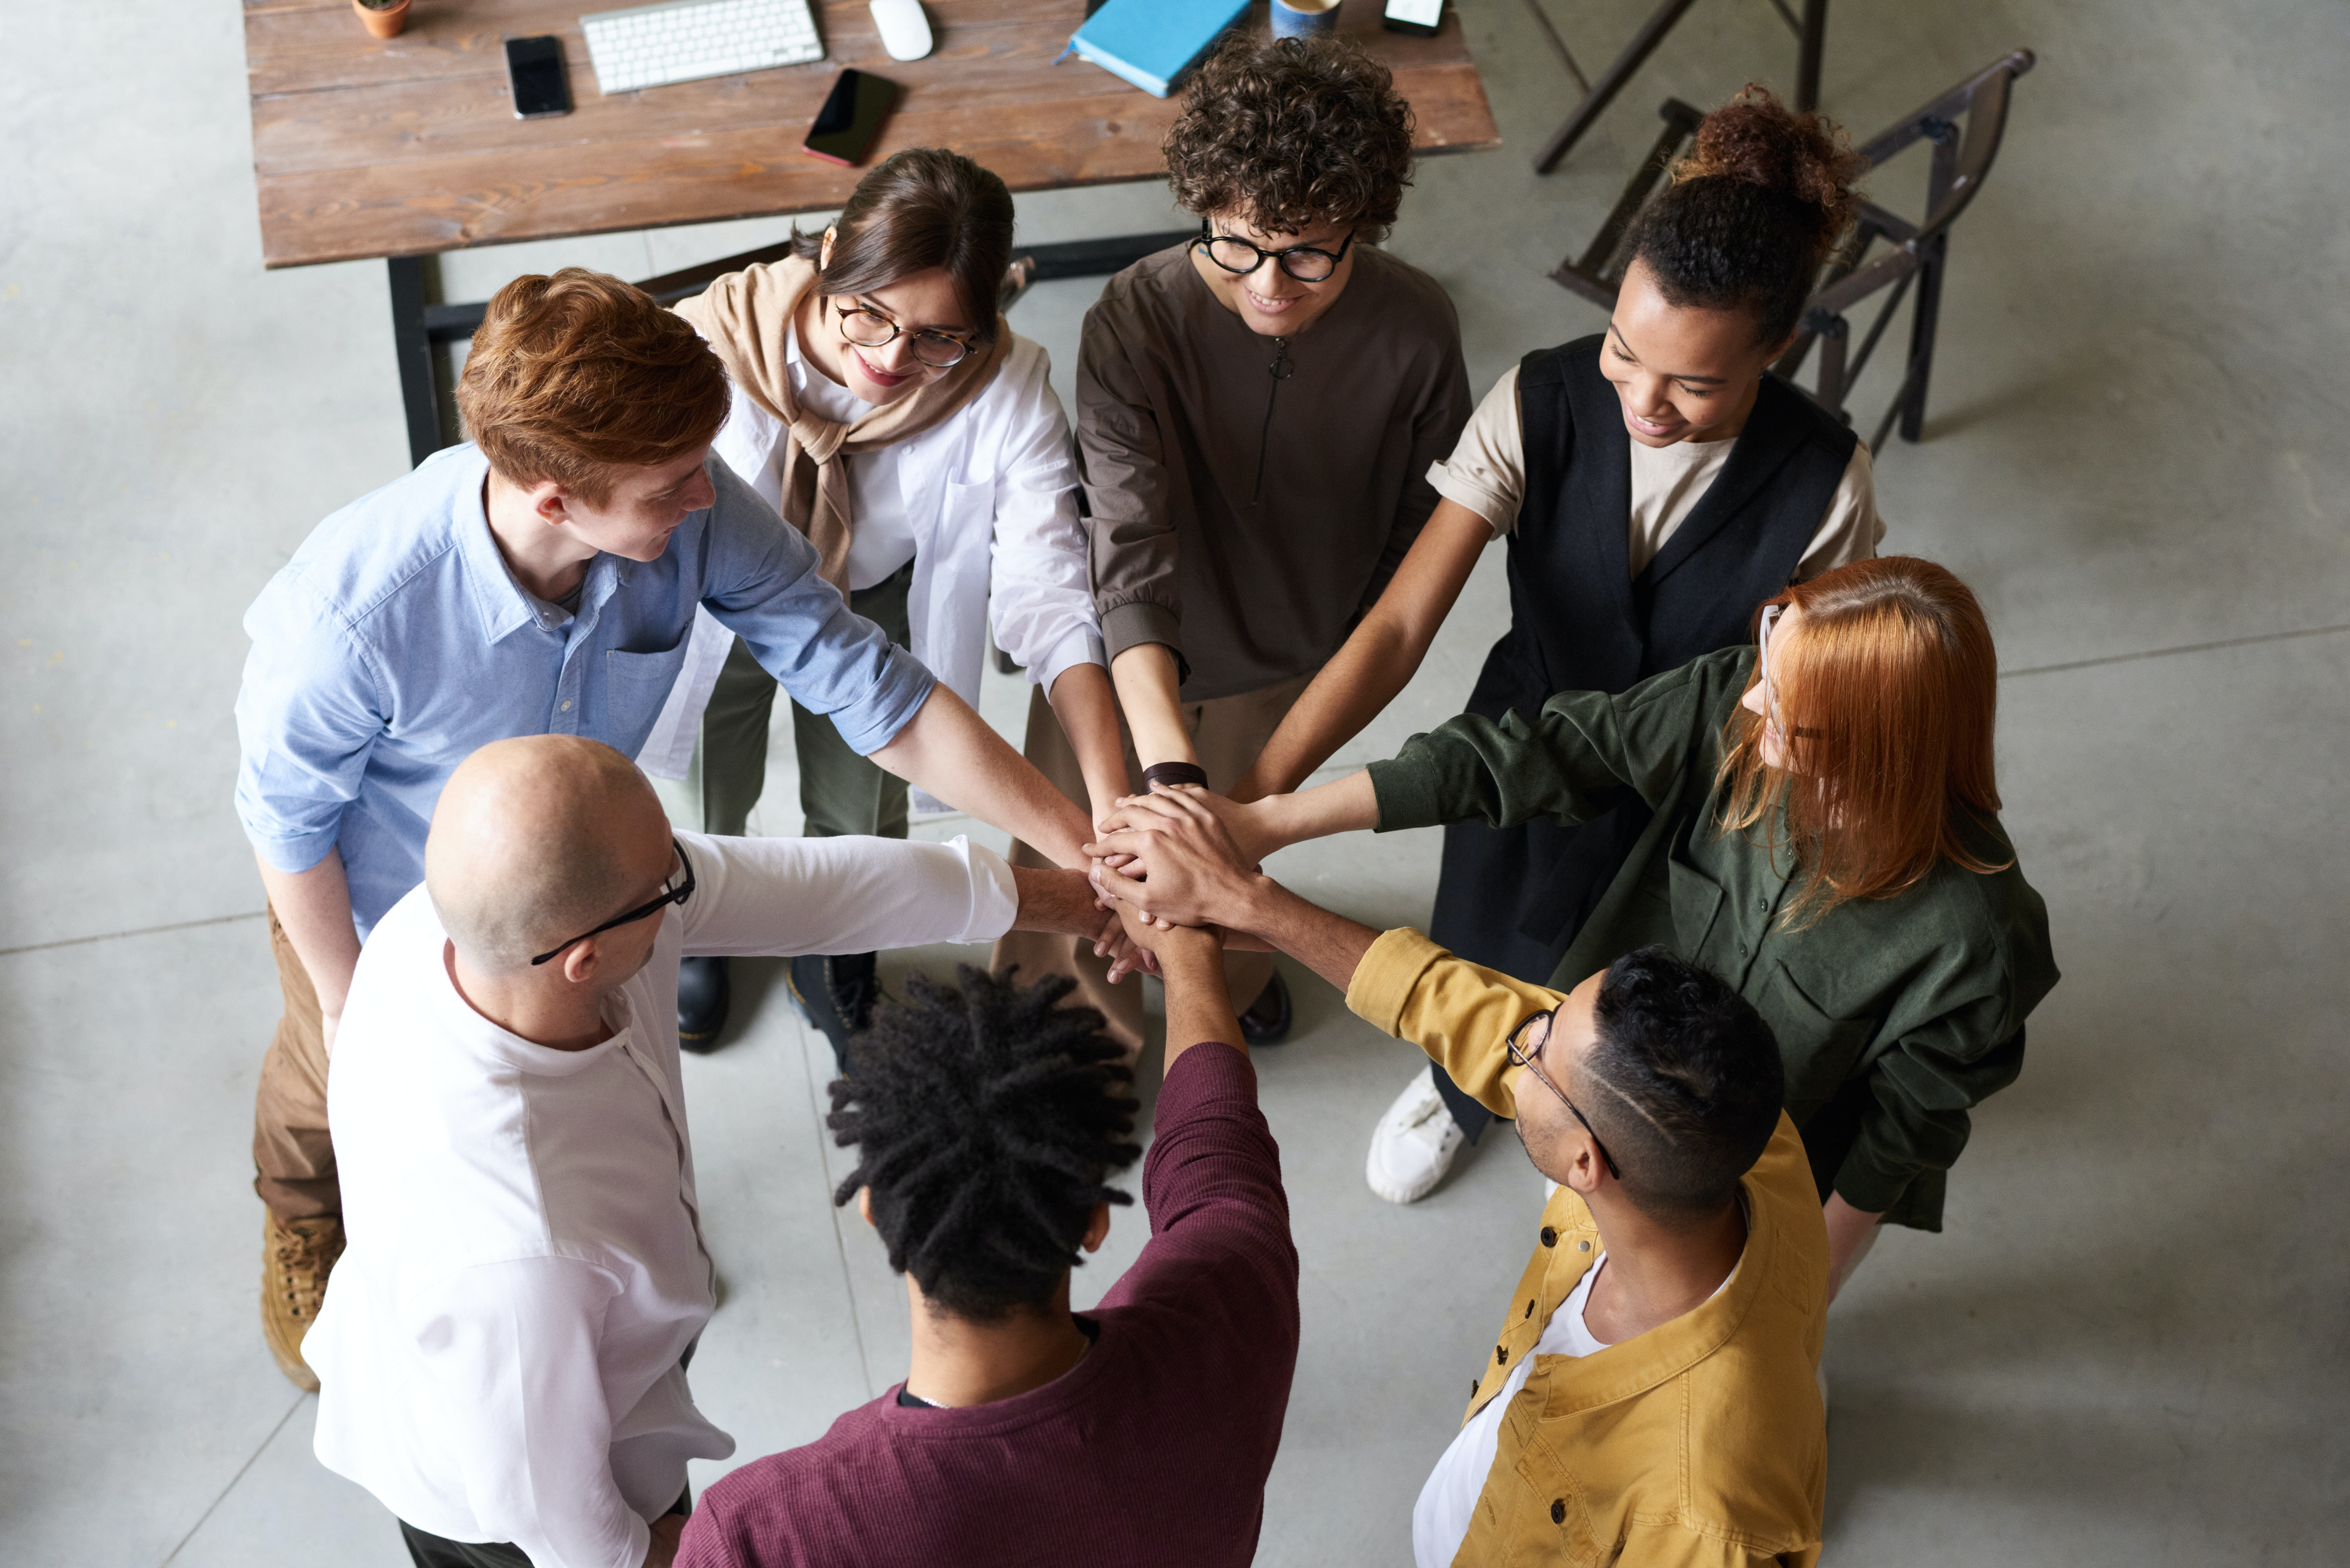 Inclusive communication on a team